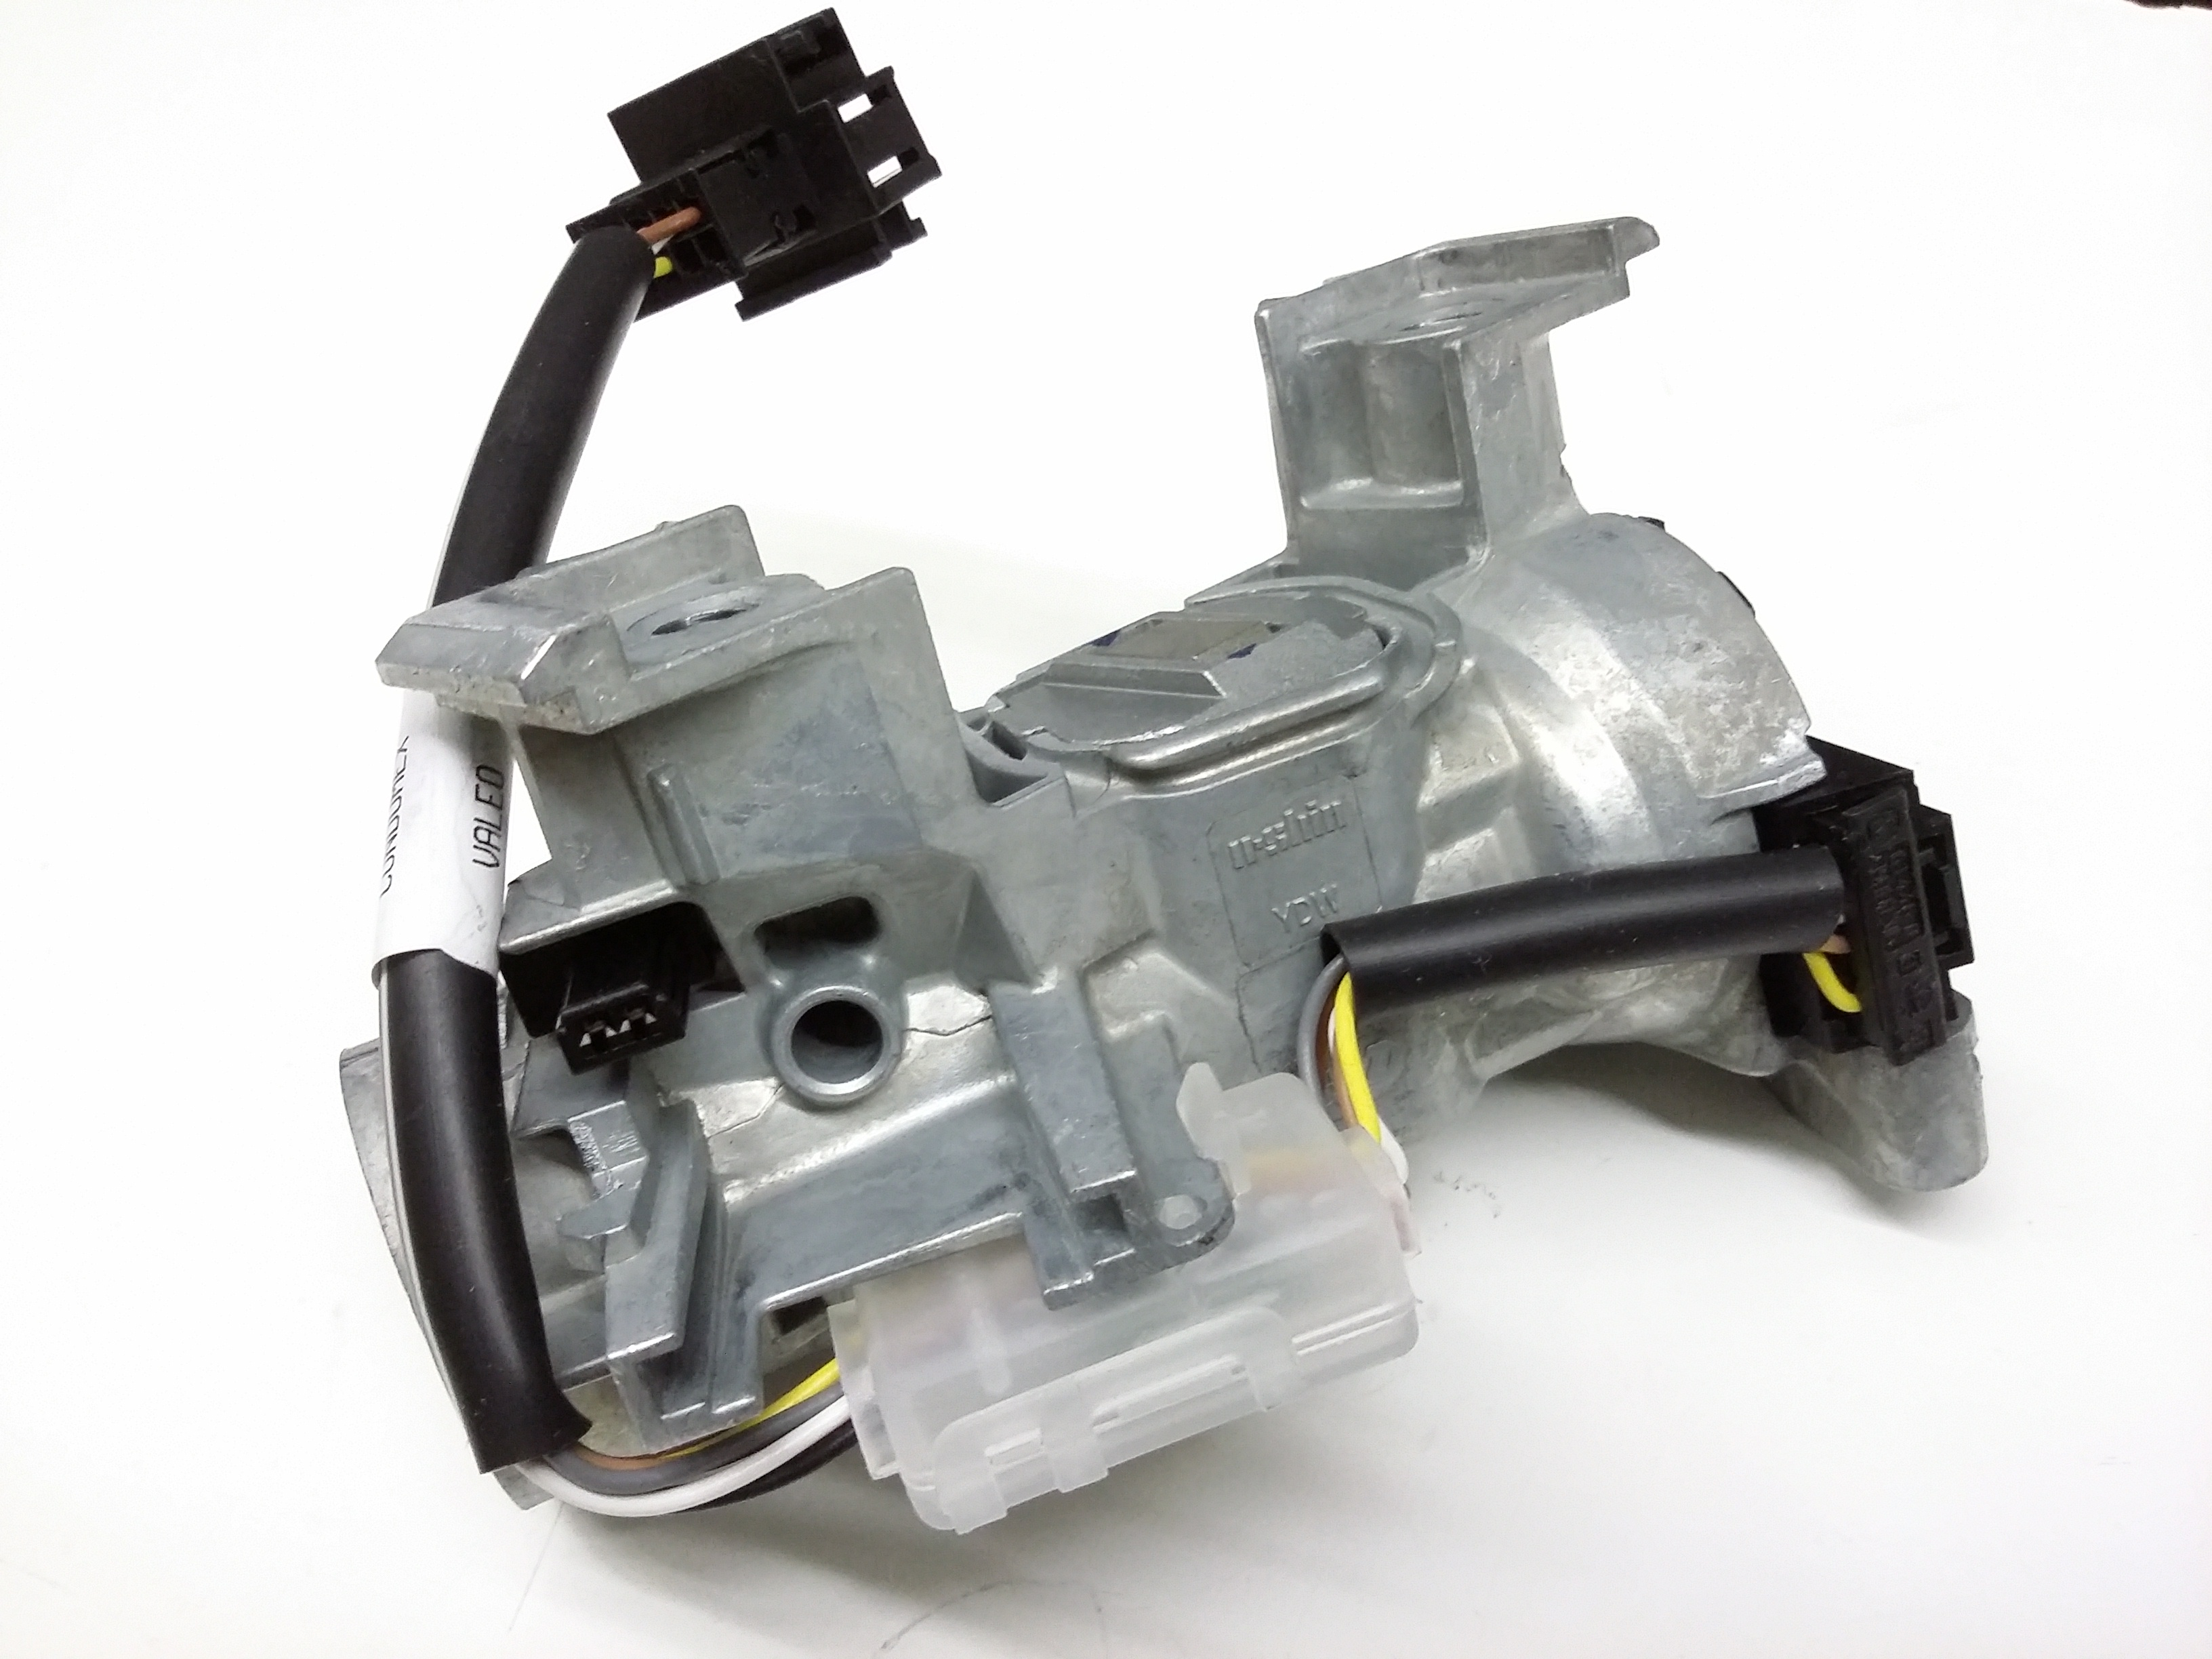 Volkswagen Jetta Steering Column Lock With Ignition Switch And Adapter Wiring Harness